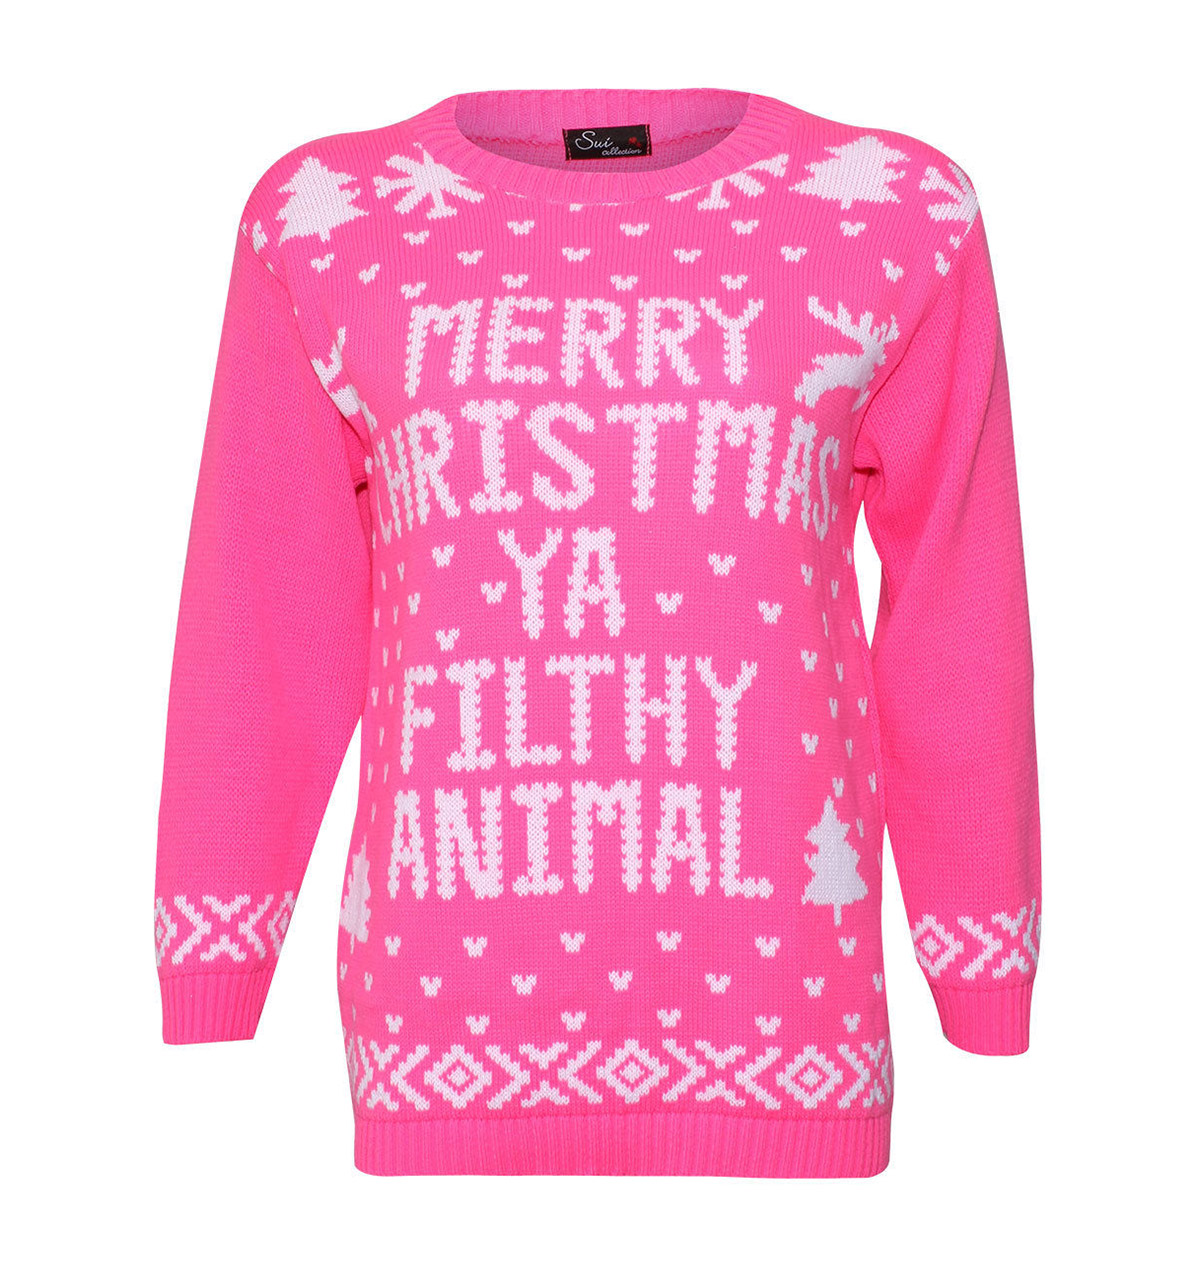 Pink Christmas Sweater - Cashmere Sweater England